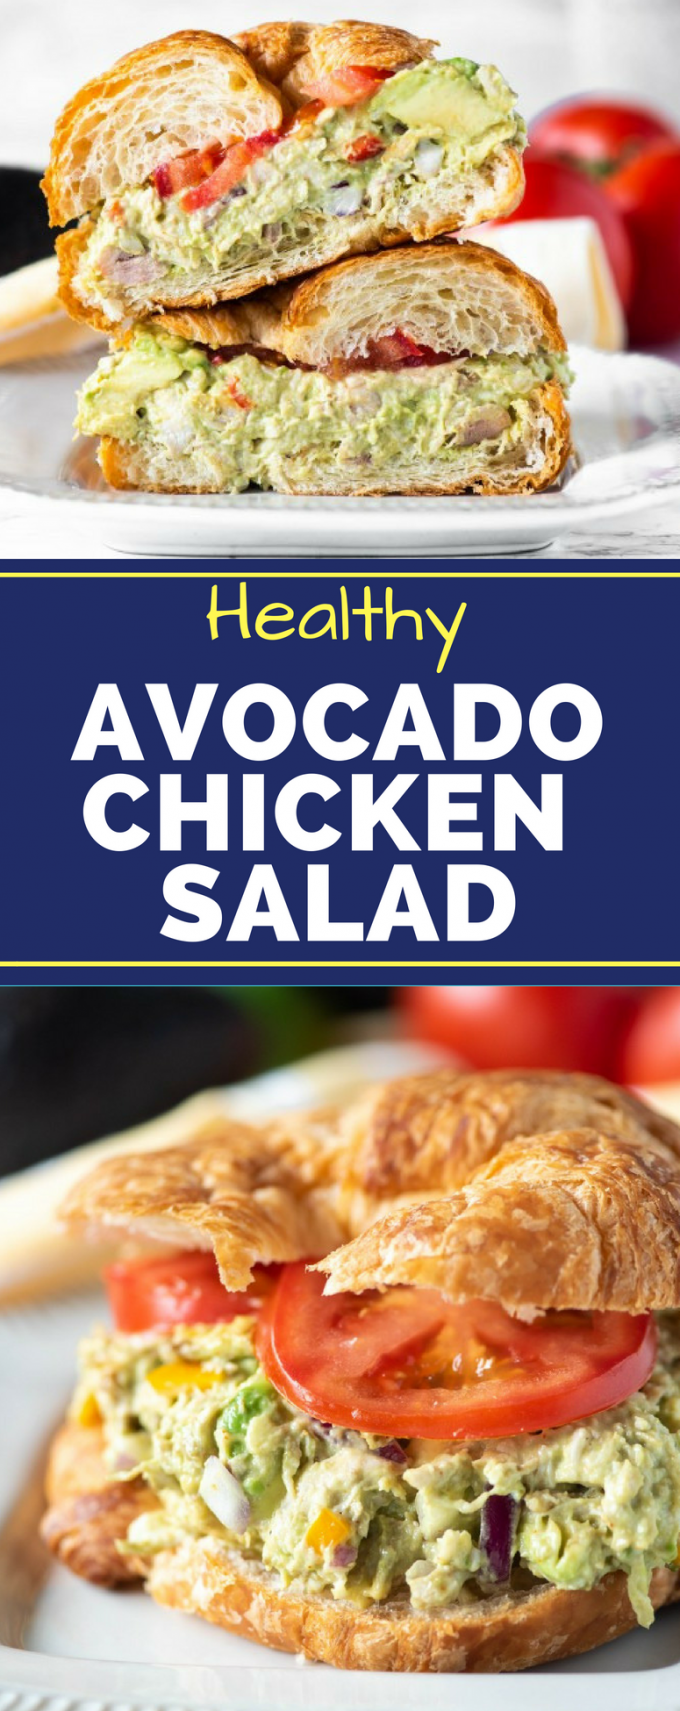 This easy, Healthy Avocado Chicken Salad recipe is the best! Rather than using no mayo, it uses avocado to replace half of it for an ultra creamy texture. You could even put it inside a lettuce wrap for a low carb option! #avocadochickensalad #healthychickensaladrecipes #healthyrecipes #gogogogourmet